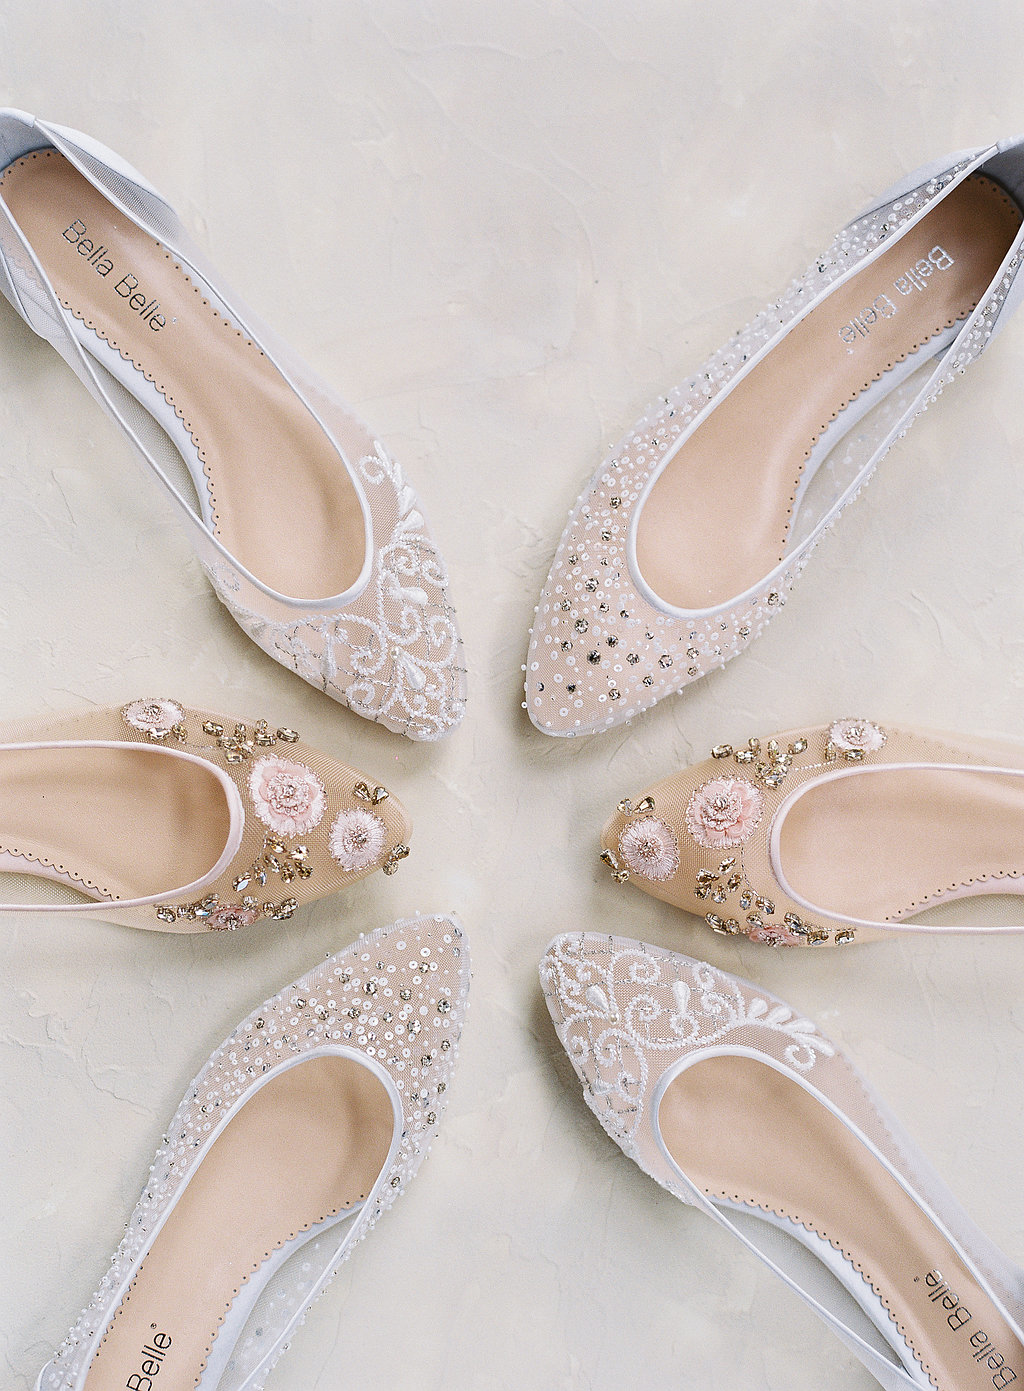 f704086b96b803 Wedding flats for days! Our Bella Belle Euphoria 2018 wedding shoe  collection features flats in ivory and blush. Featuring sparkly crystal  embellishments